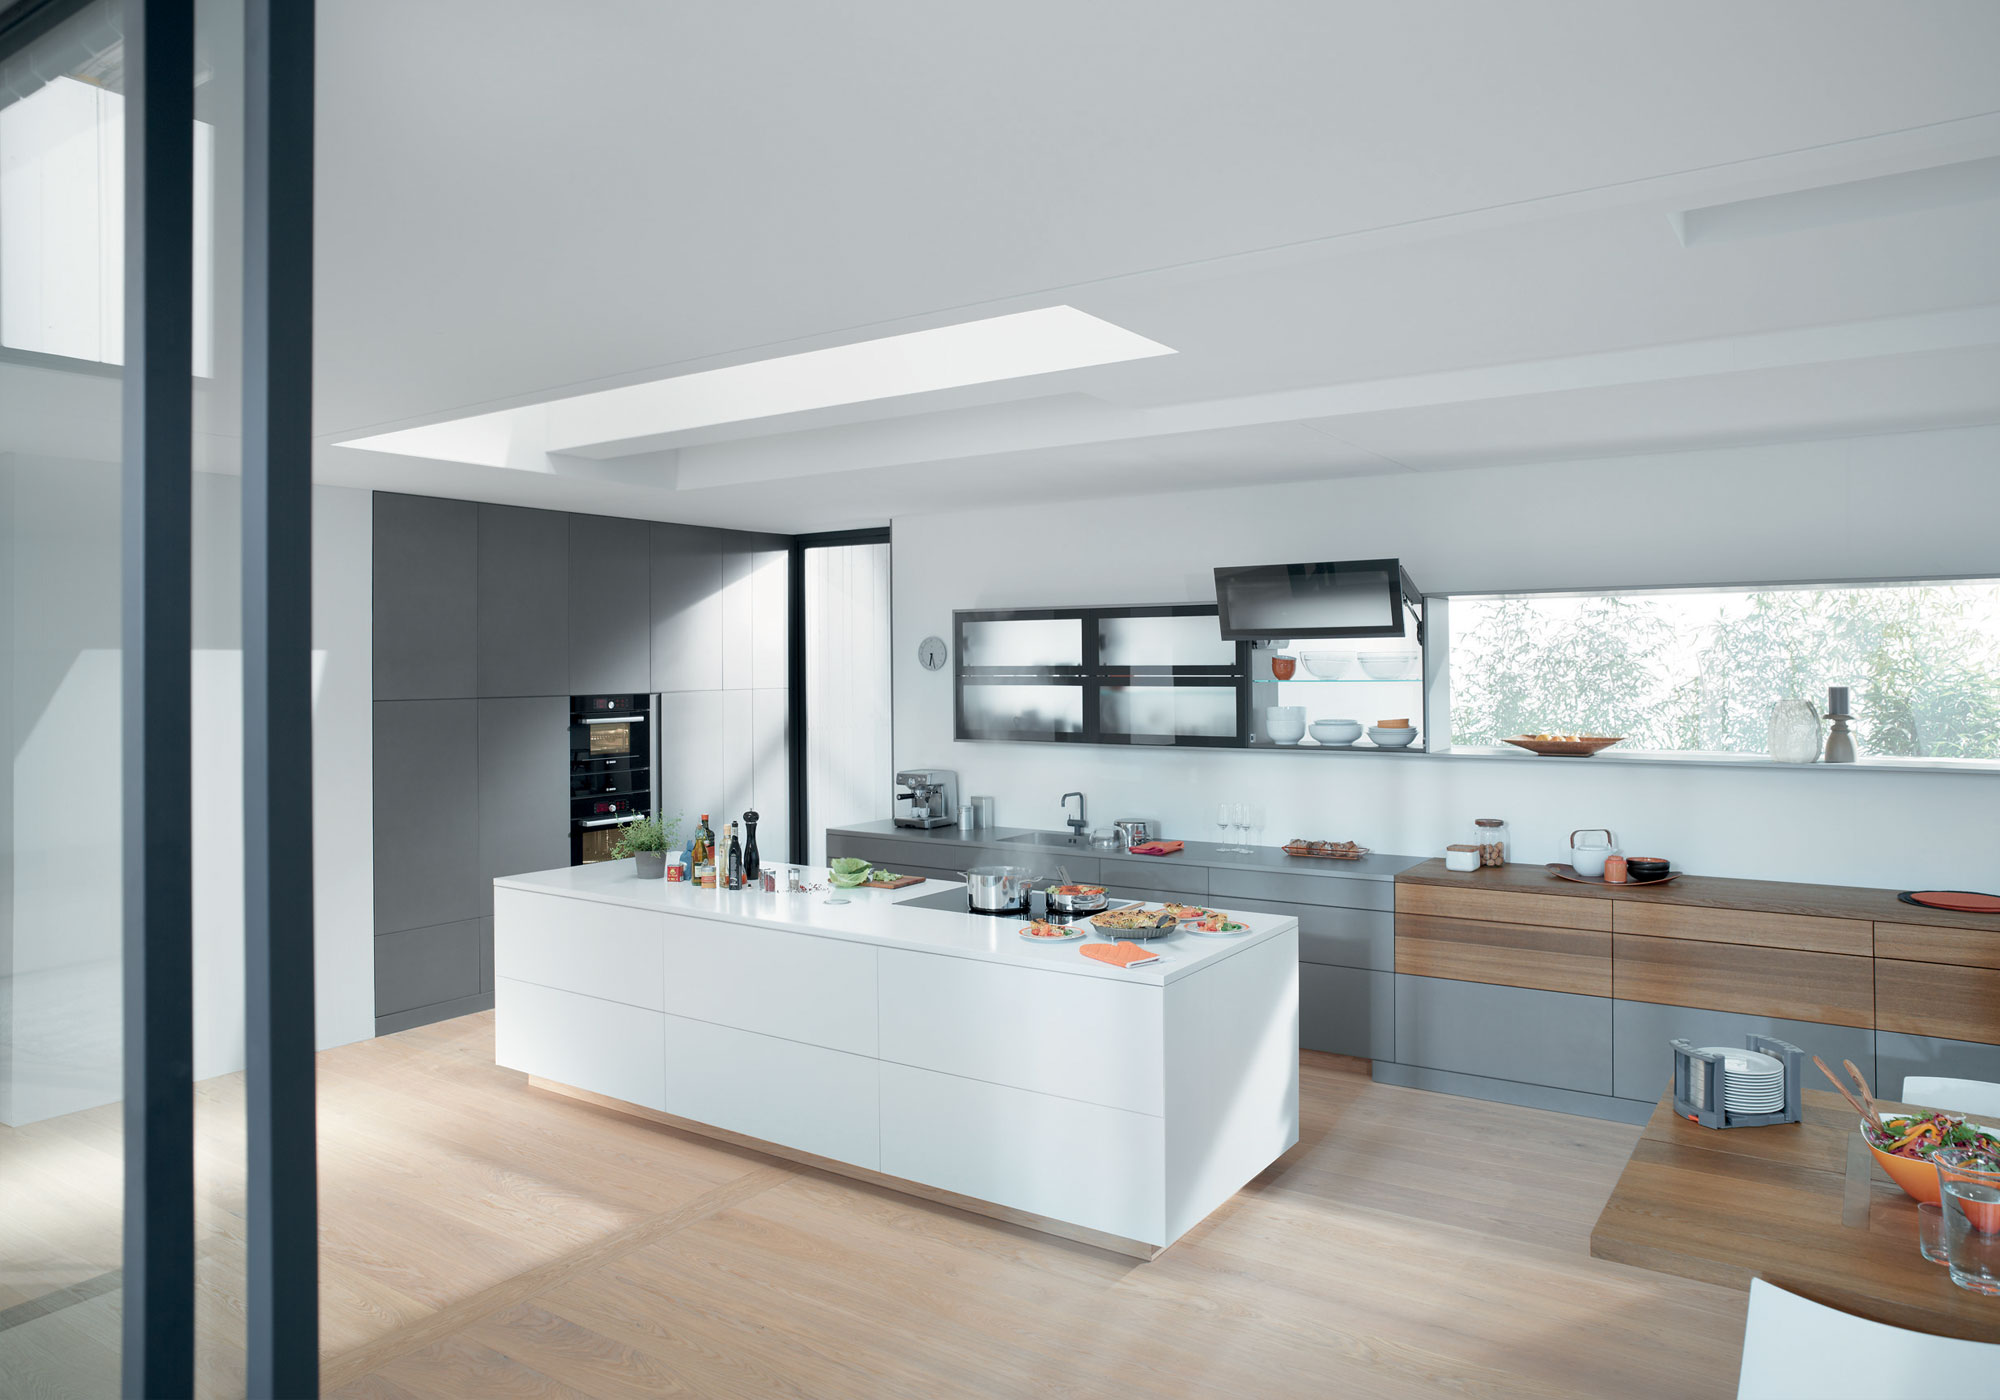 Breathtaking Beach and Coastal Style Kitchens in Geelong & Surf Coast